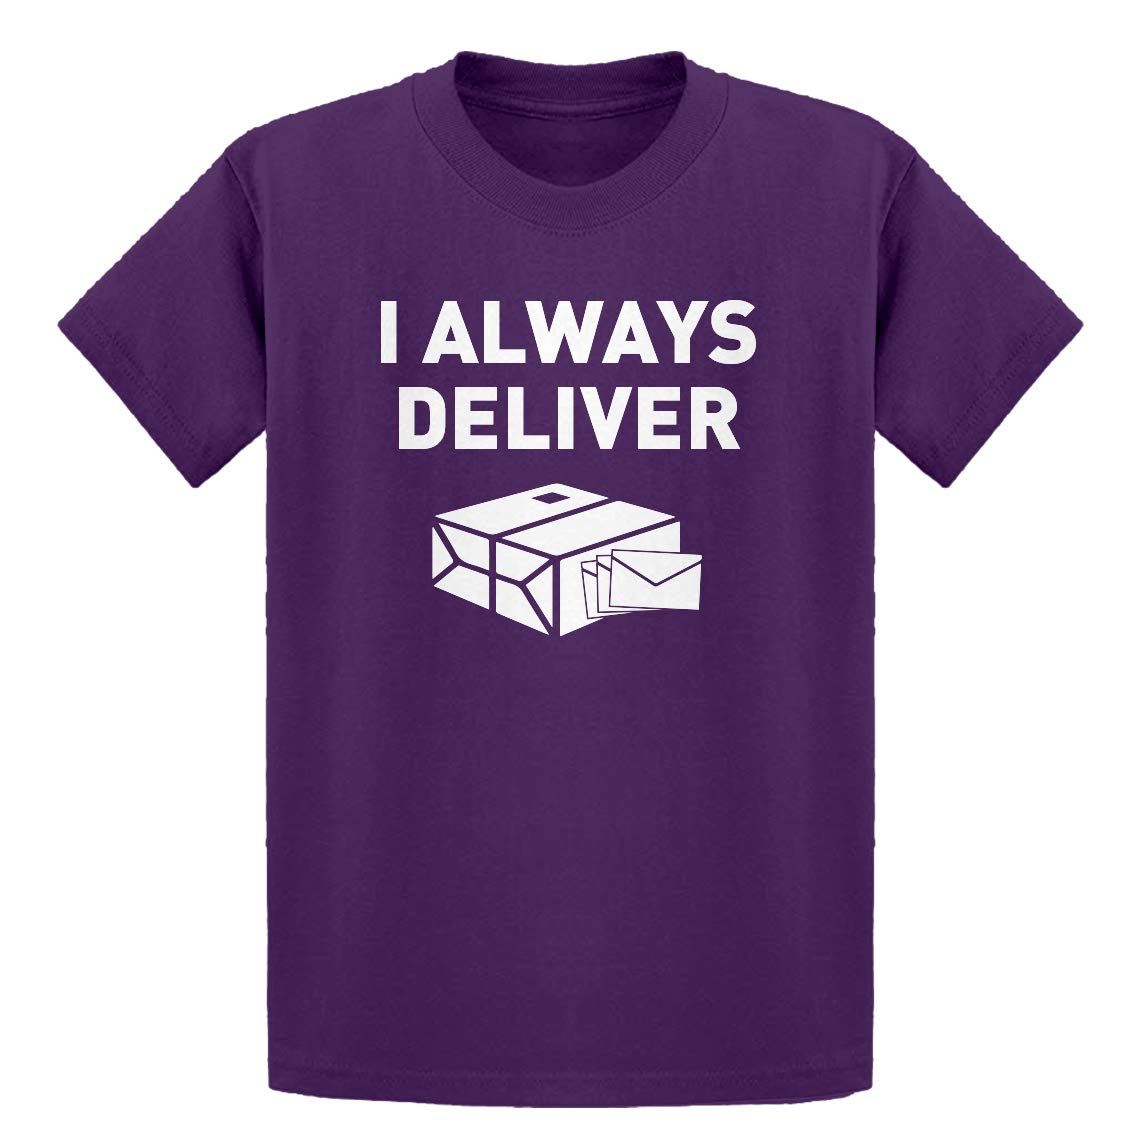 Indica Plateau Youth I Always Deliver Kids T-Shirt